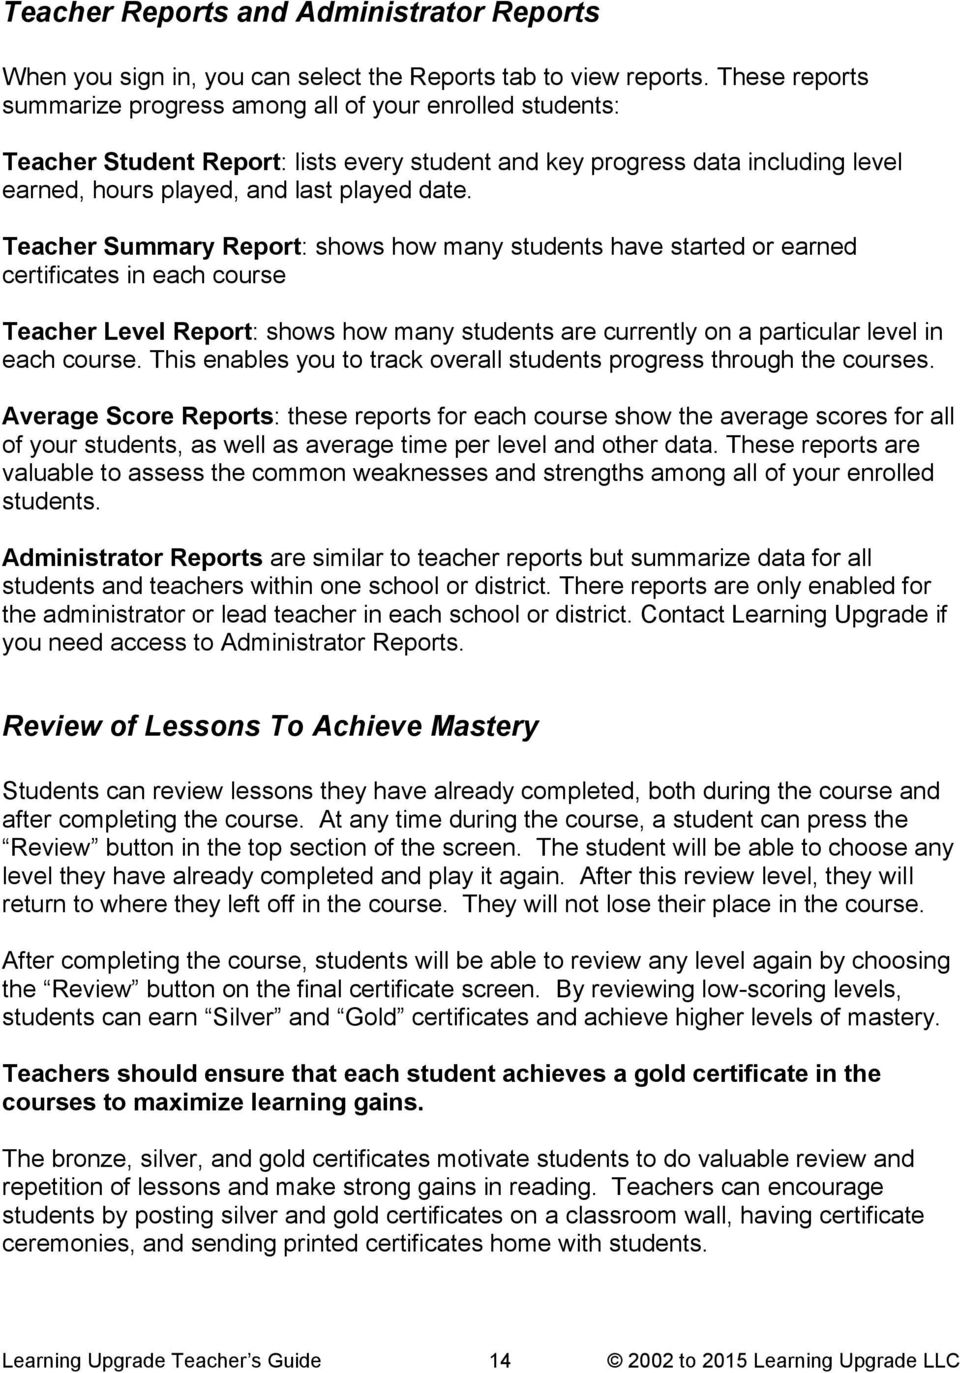 Teacher Summary Report: shows how many students have started or earned certificates in each course Teacher Level Report: shows how many students are currently on a particular level in each course.